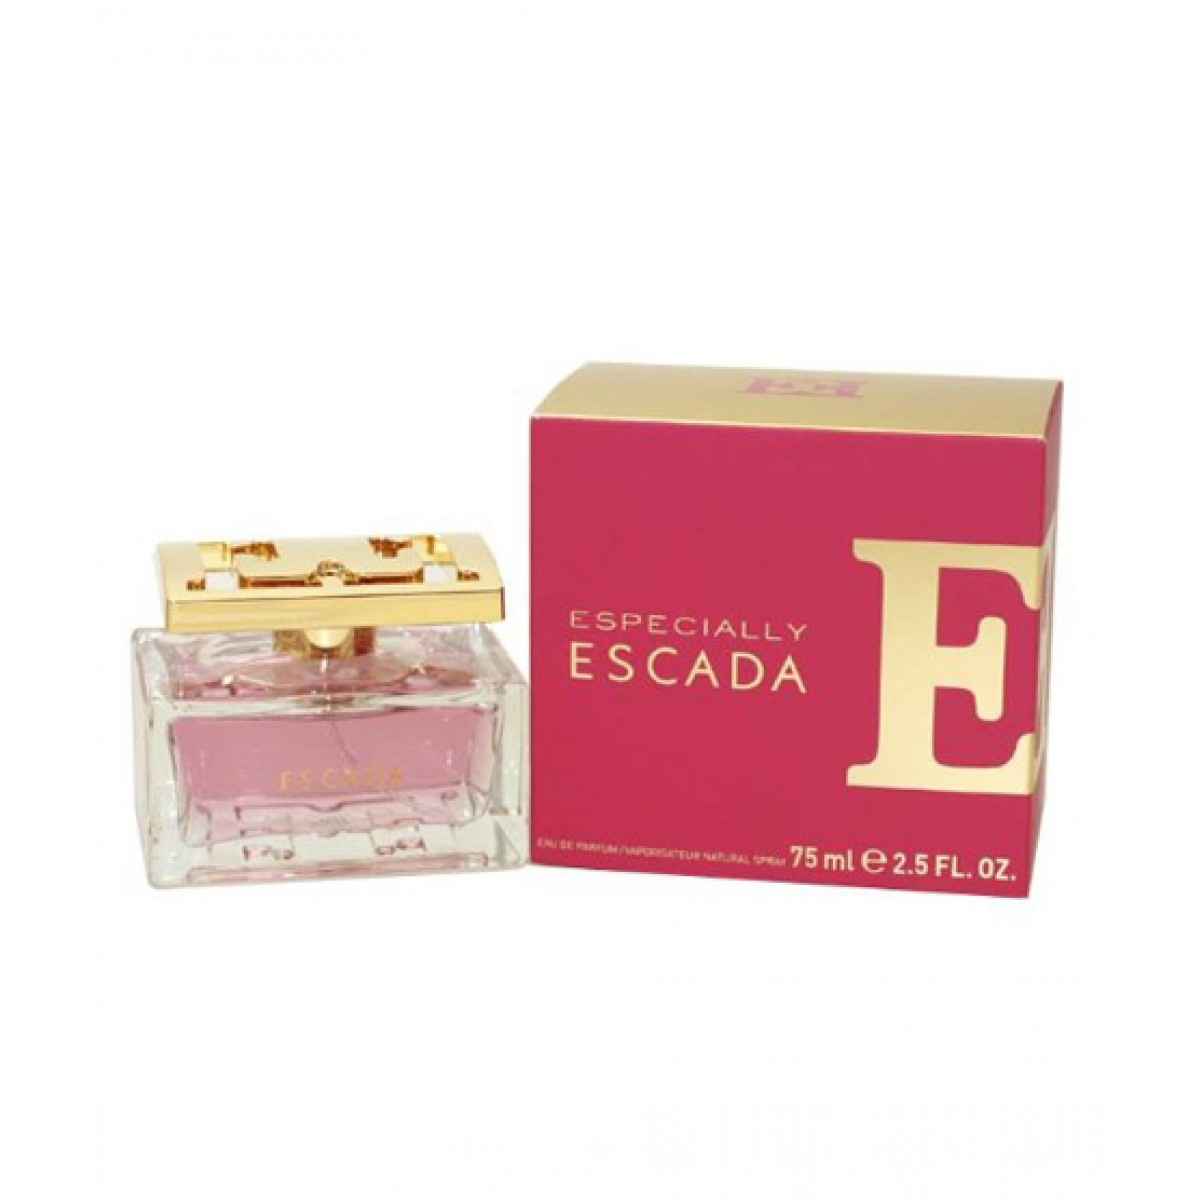 Escada Especially Eau De Parfum For Women 75ml